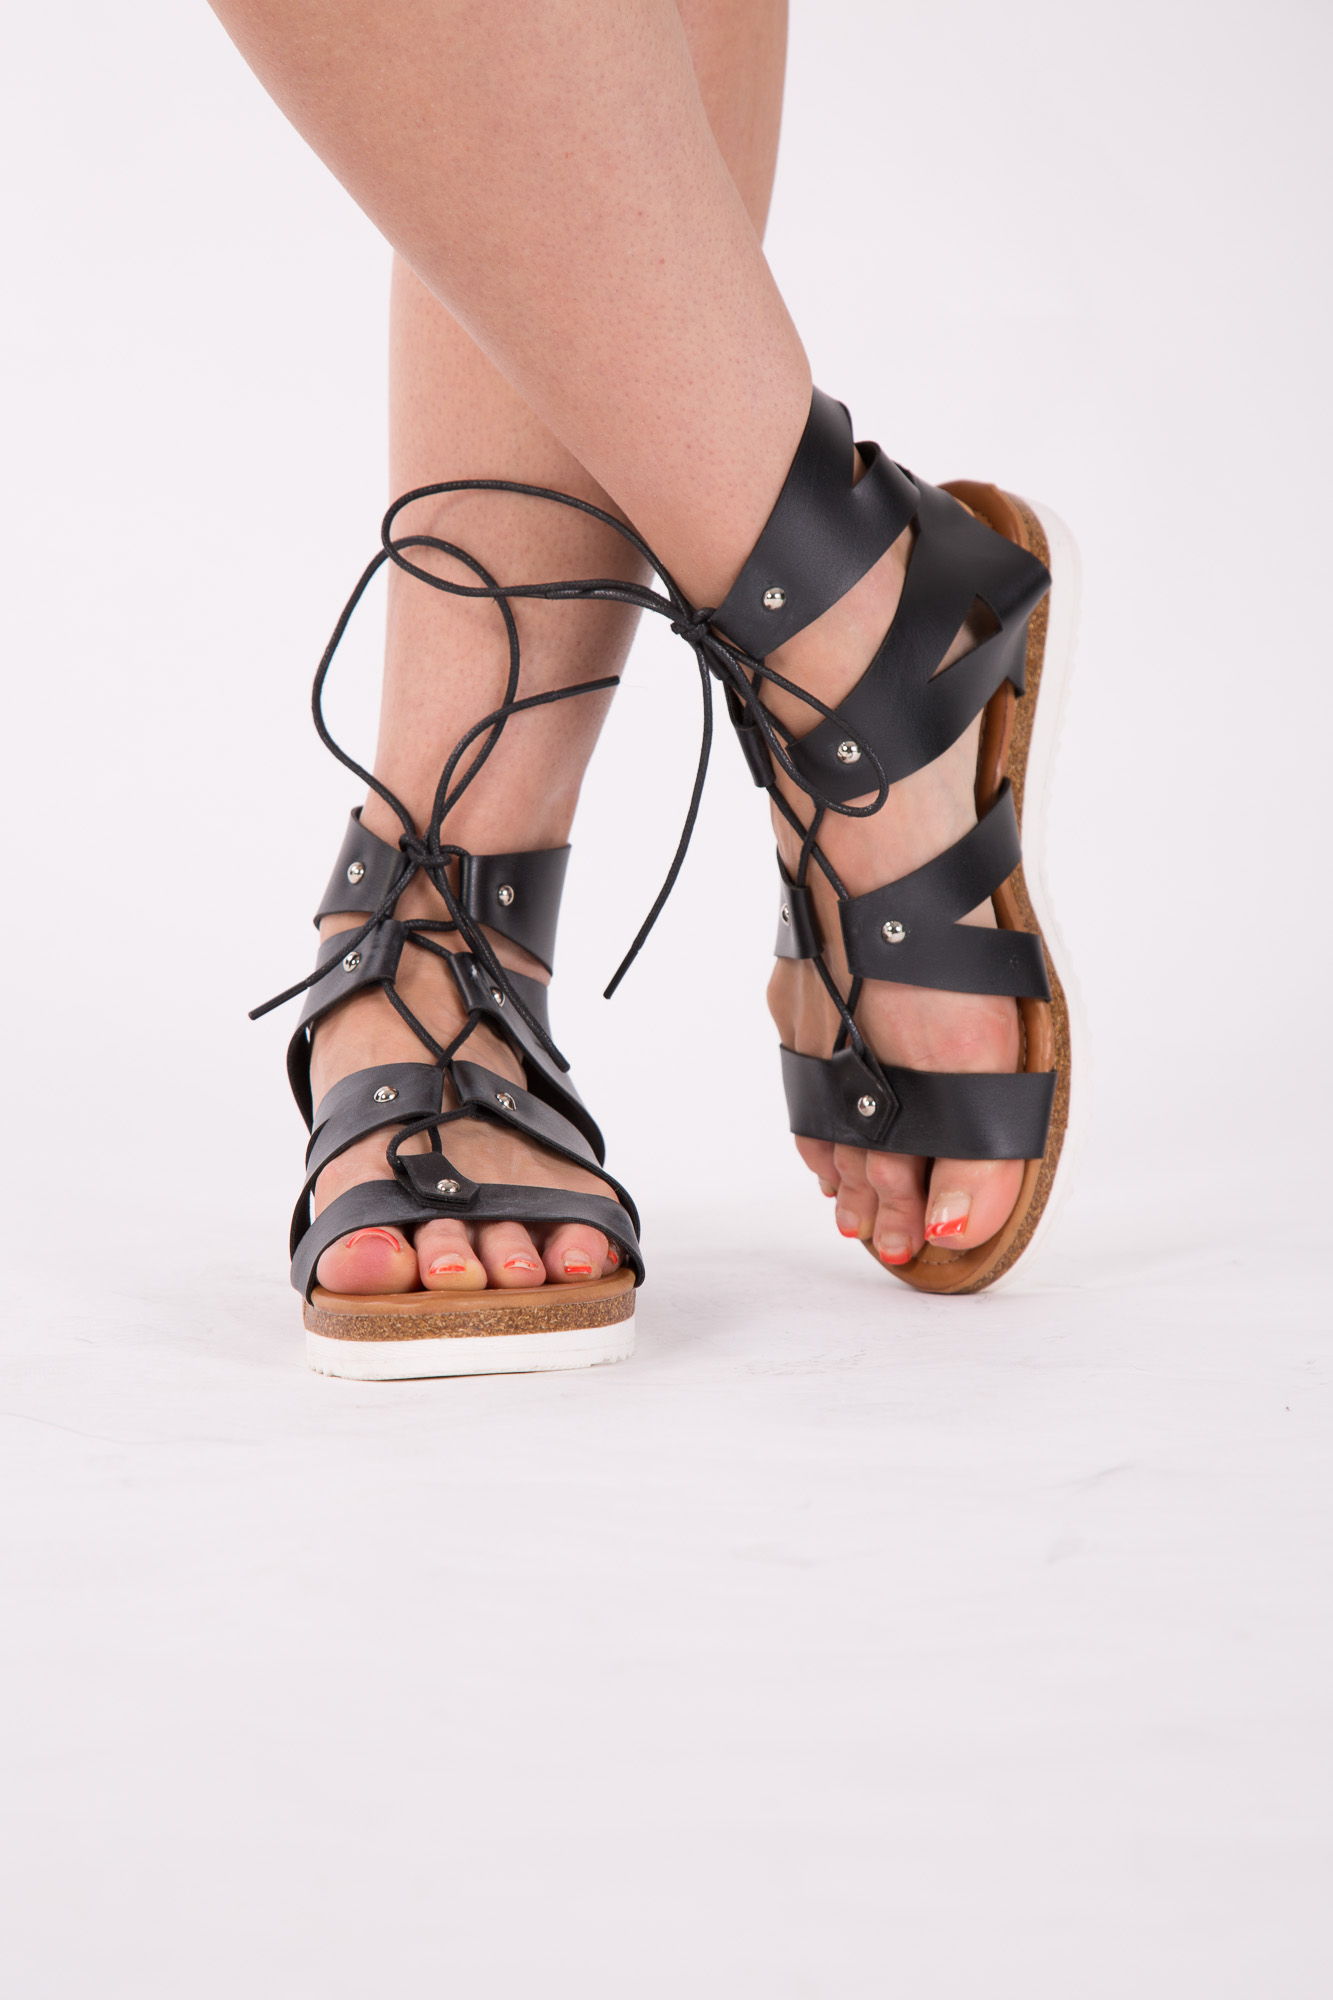 924d6ef066b3 Womens Gladiator Sandals Ladies Flat Strappy Beach Shoes Lace Up ...